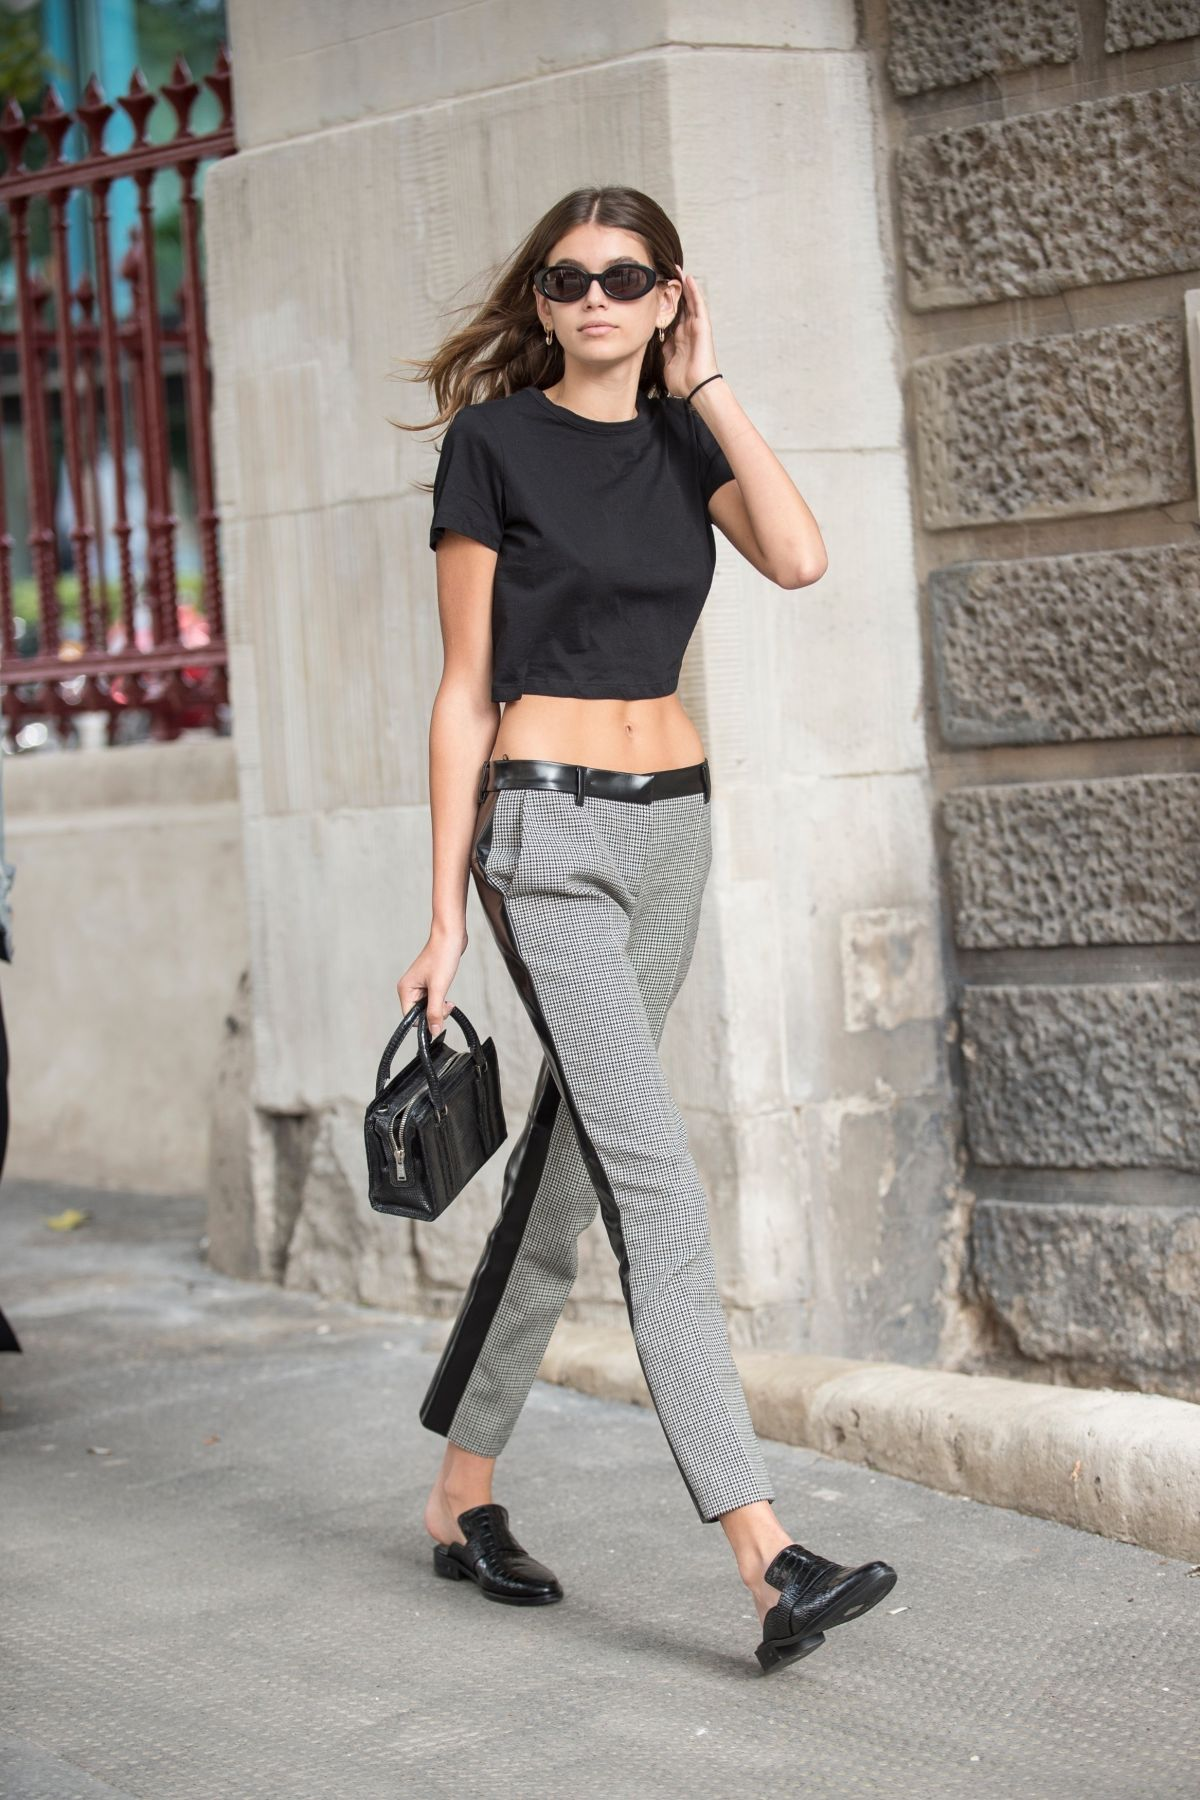 KAIA GERBER Out and About in London 09/16/2017